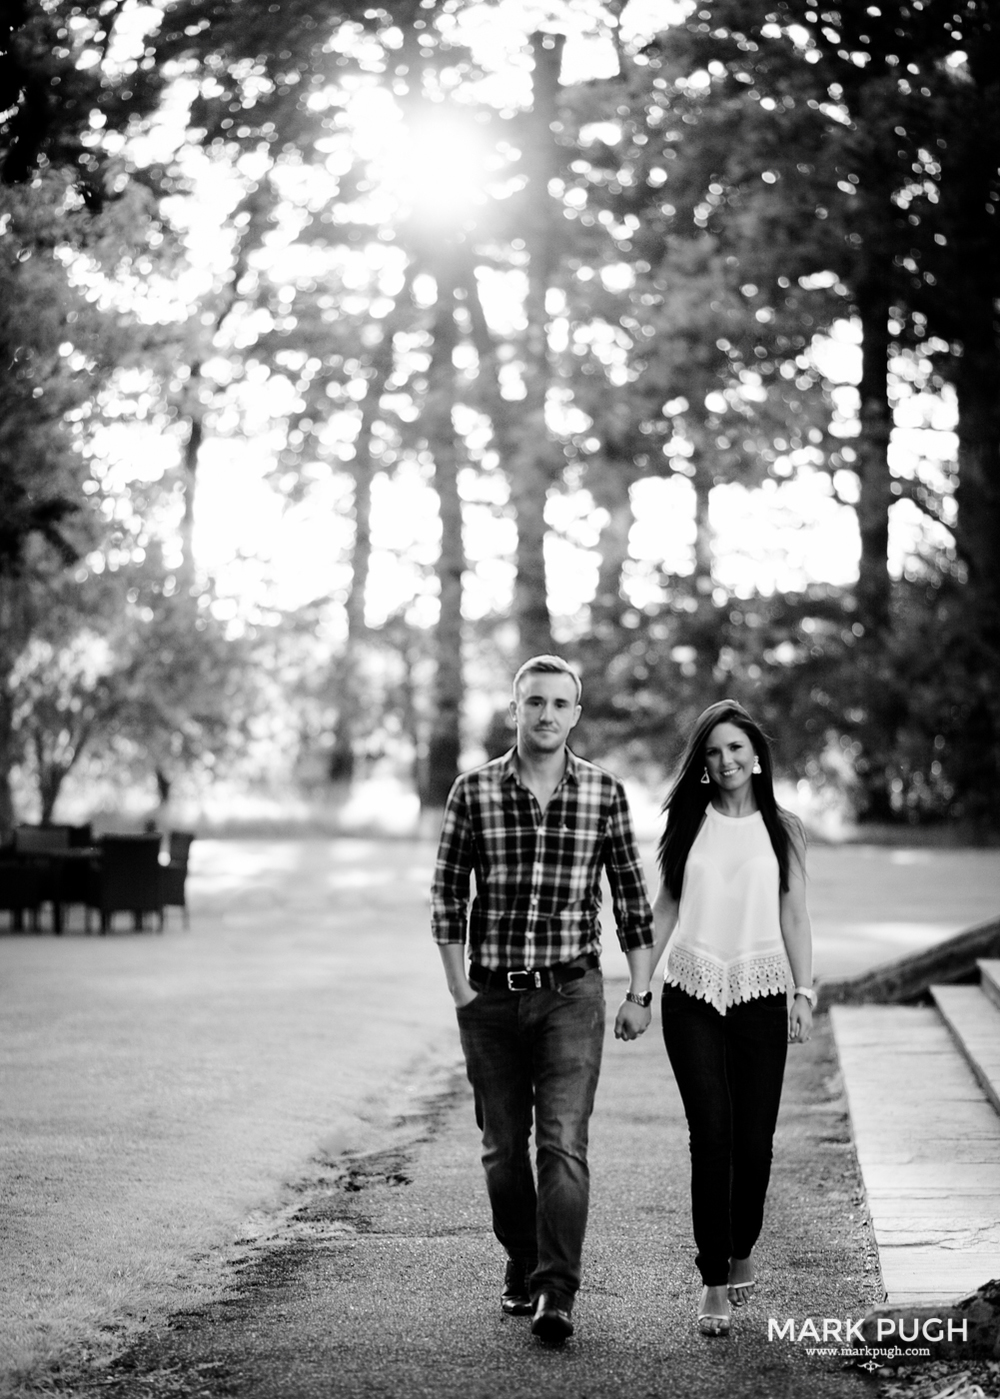 134  - Jacqueline and David - preWED Photography session at Kelham House Country Manor Hotel by Mark Pugh www.markpugh.com -0037.JPG